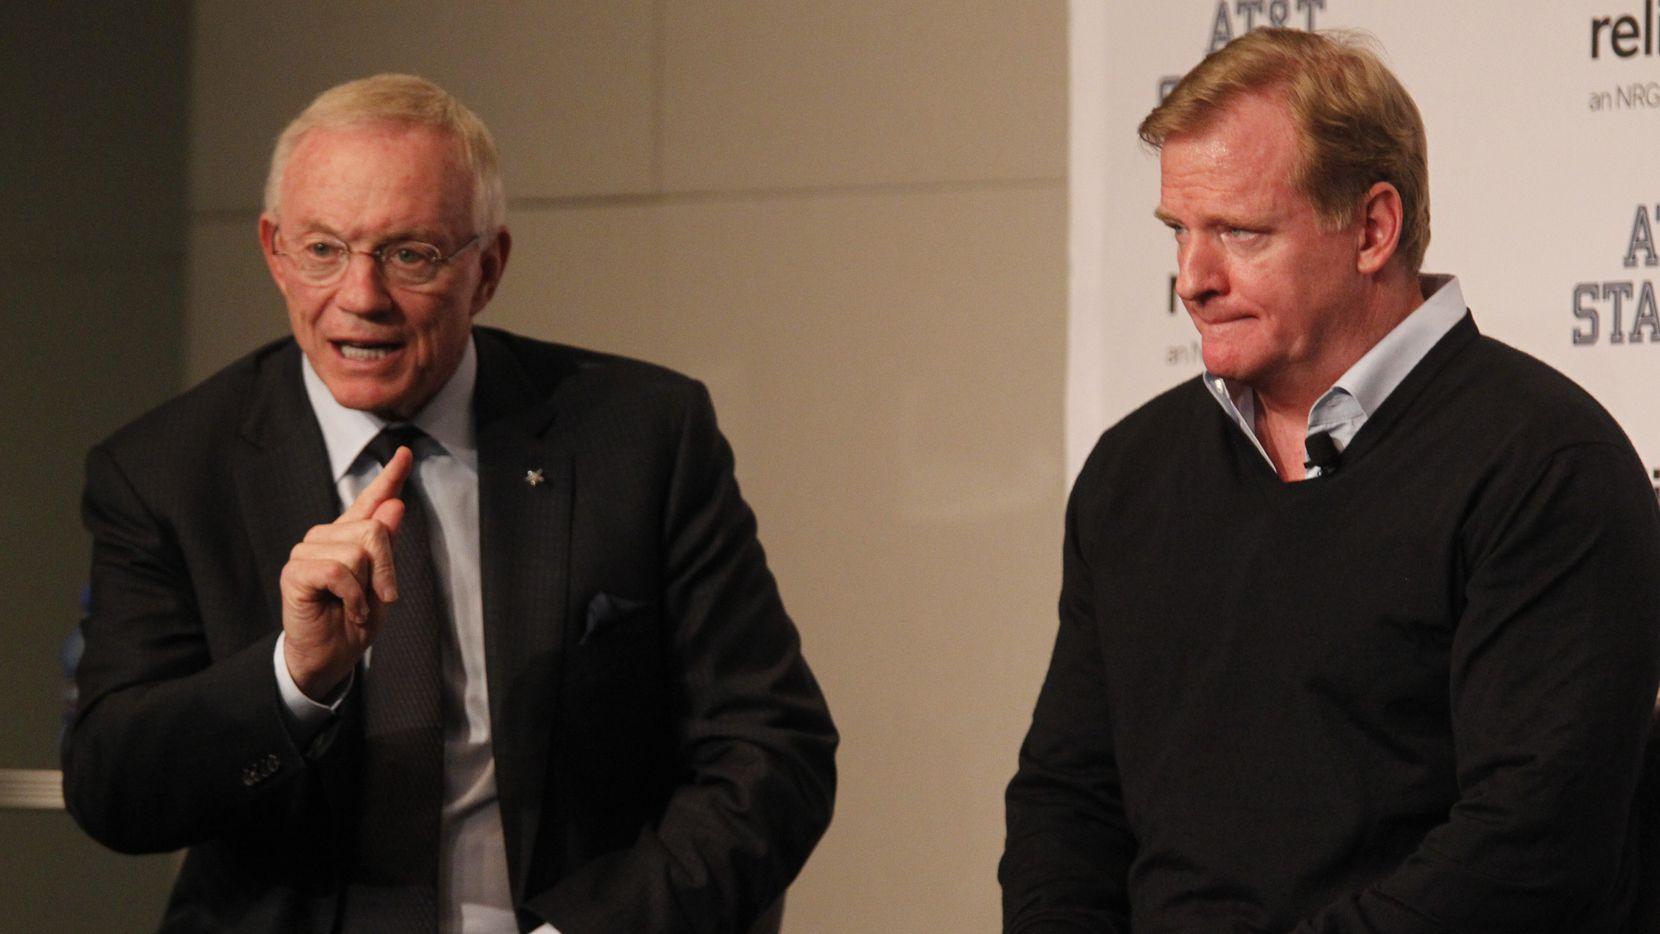 Dallas Cowboys owner Jerry Jones and NFL Commissioner Roger Goodell speak at a Fan Forum prior to the NFL football game in Arlington, Texas on October 13, 2013. (Michael Ainsworth/The Dallas Morning News)